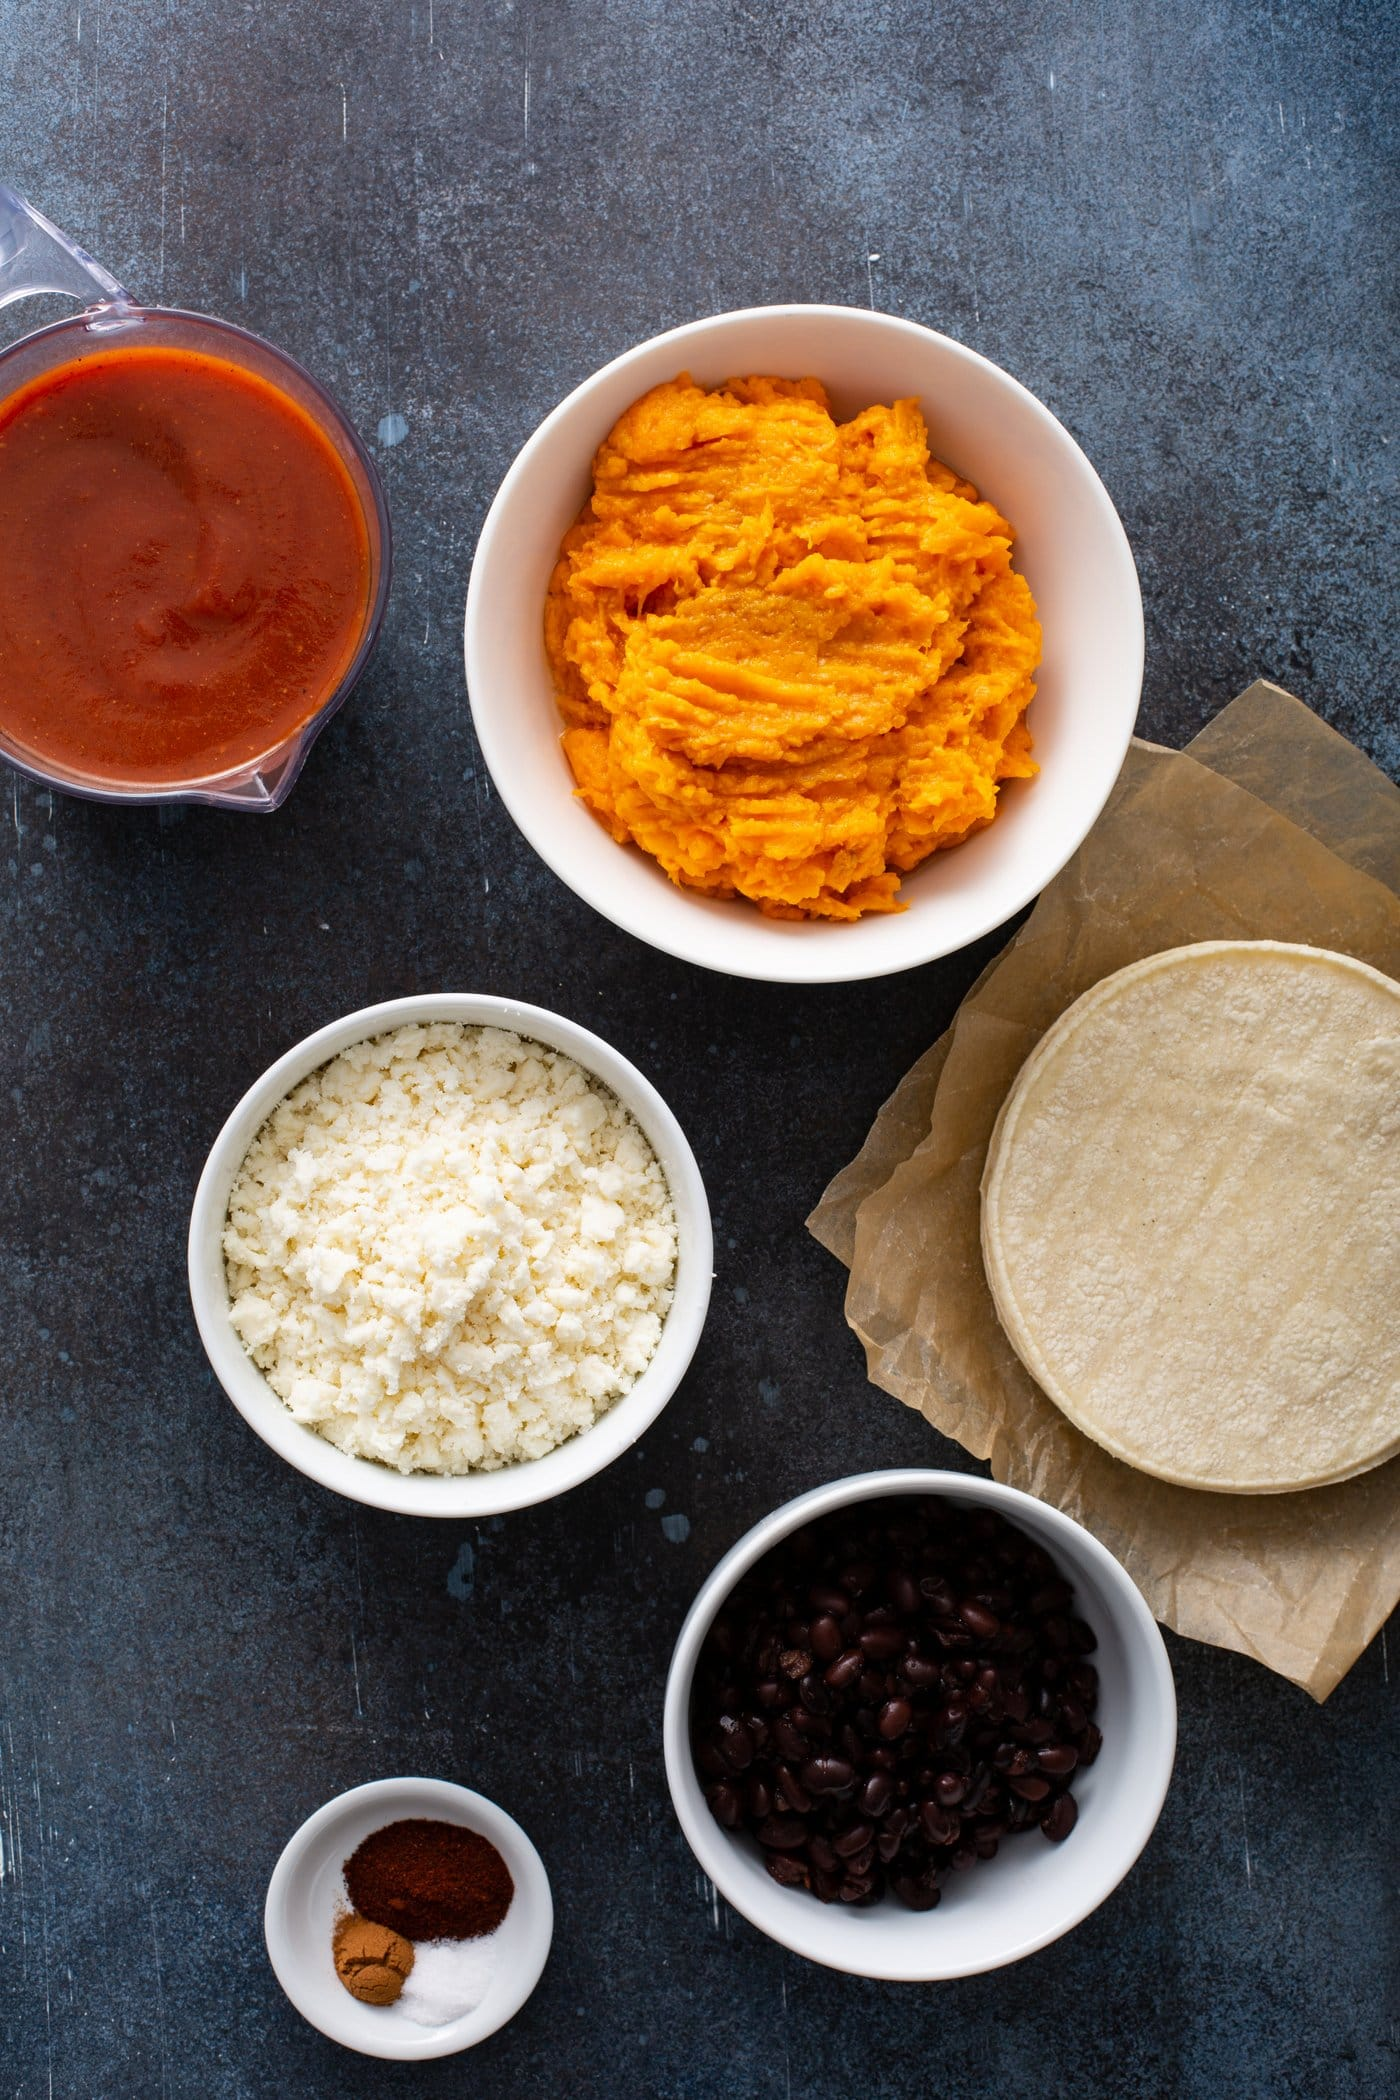 Small containers of mashed sweet potato, red enchiladas sauce, queso fresco cheese, and corn tortillas.